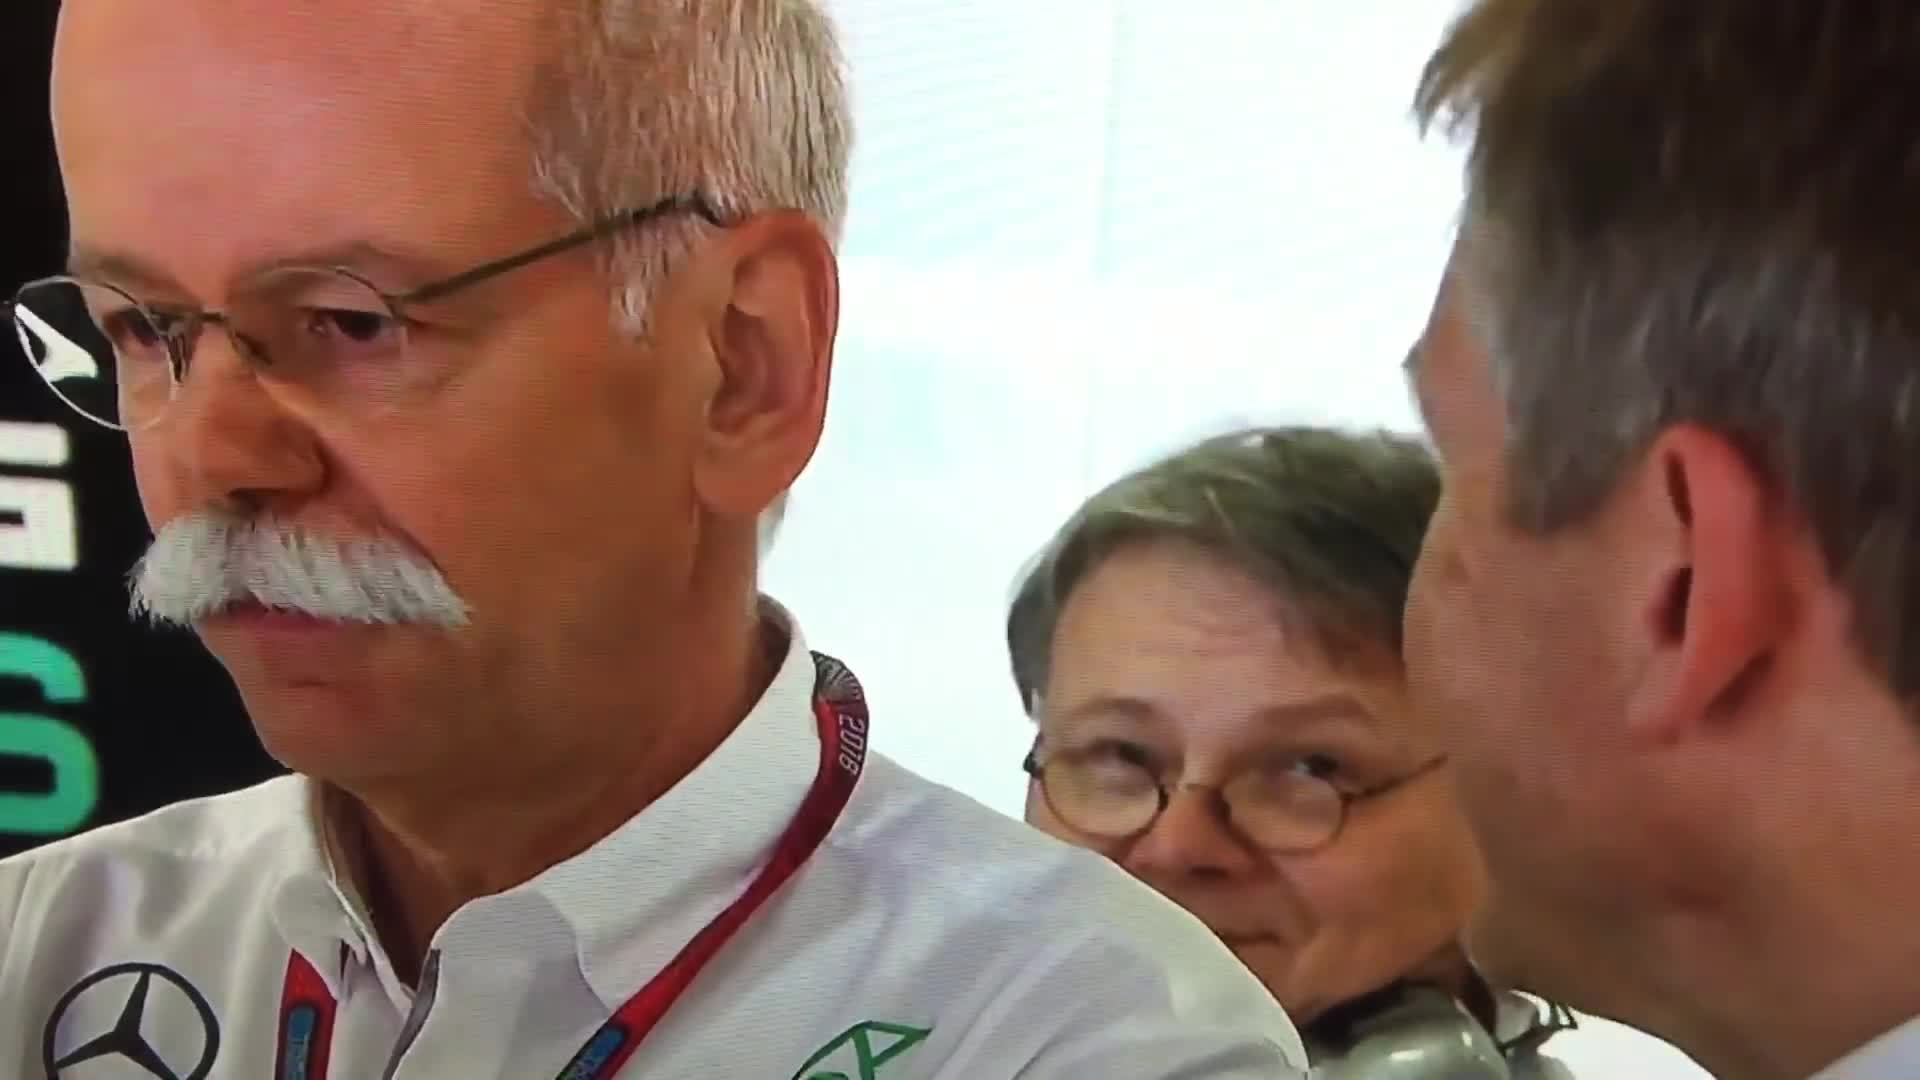 formula1, Yes, scheisse indeed! GIFs